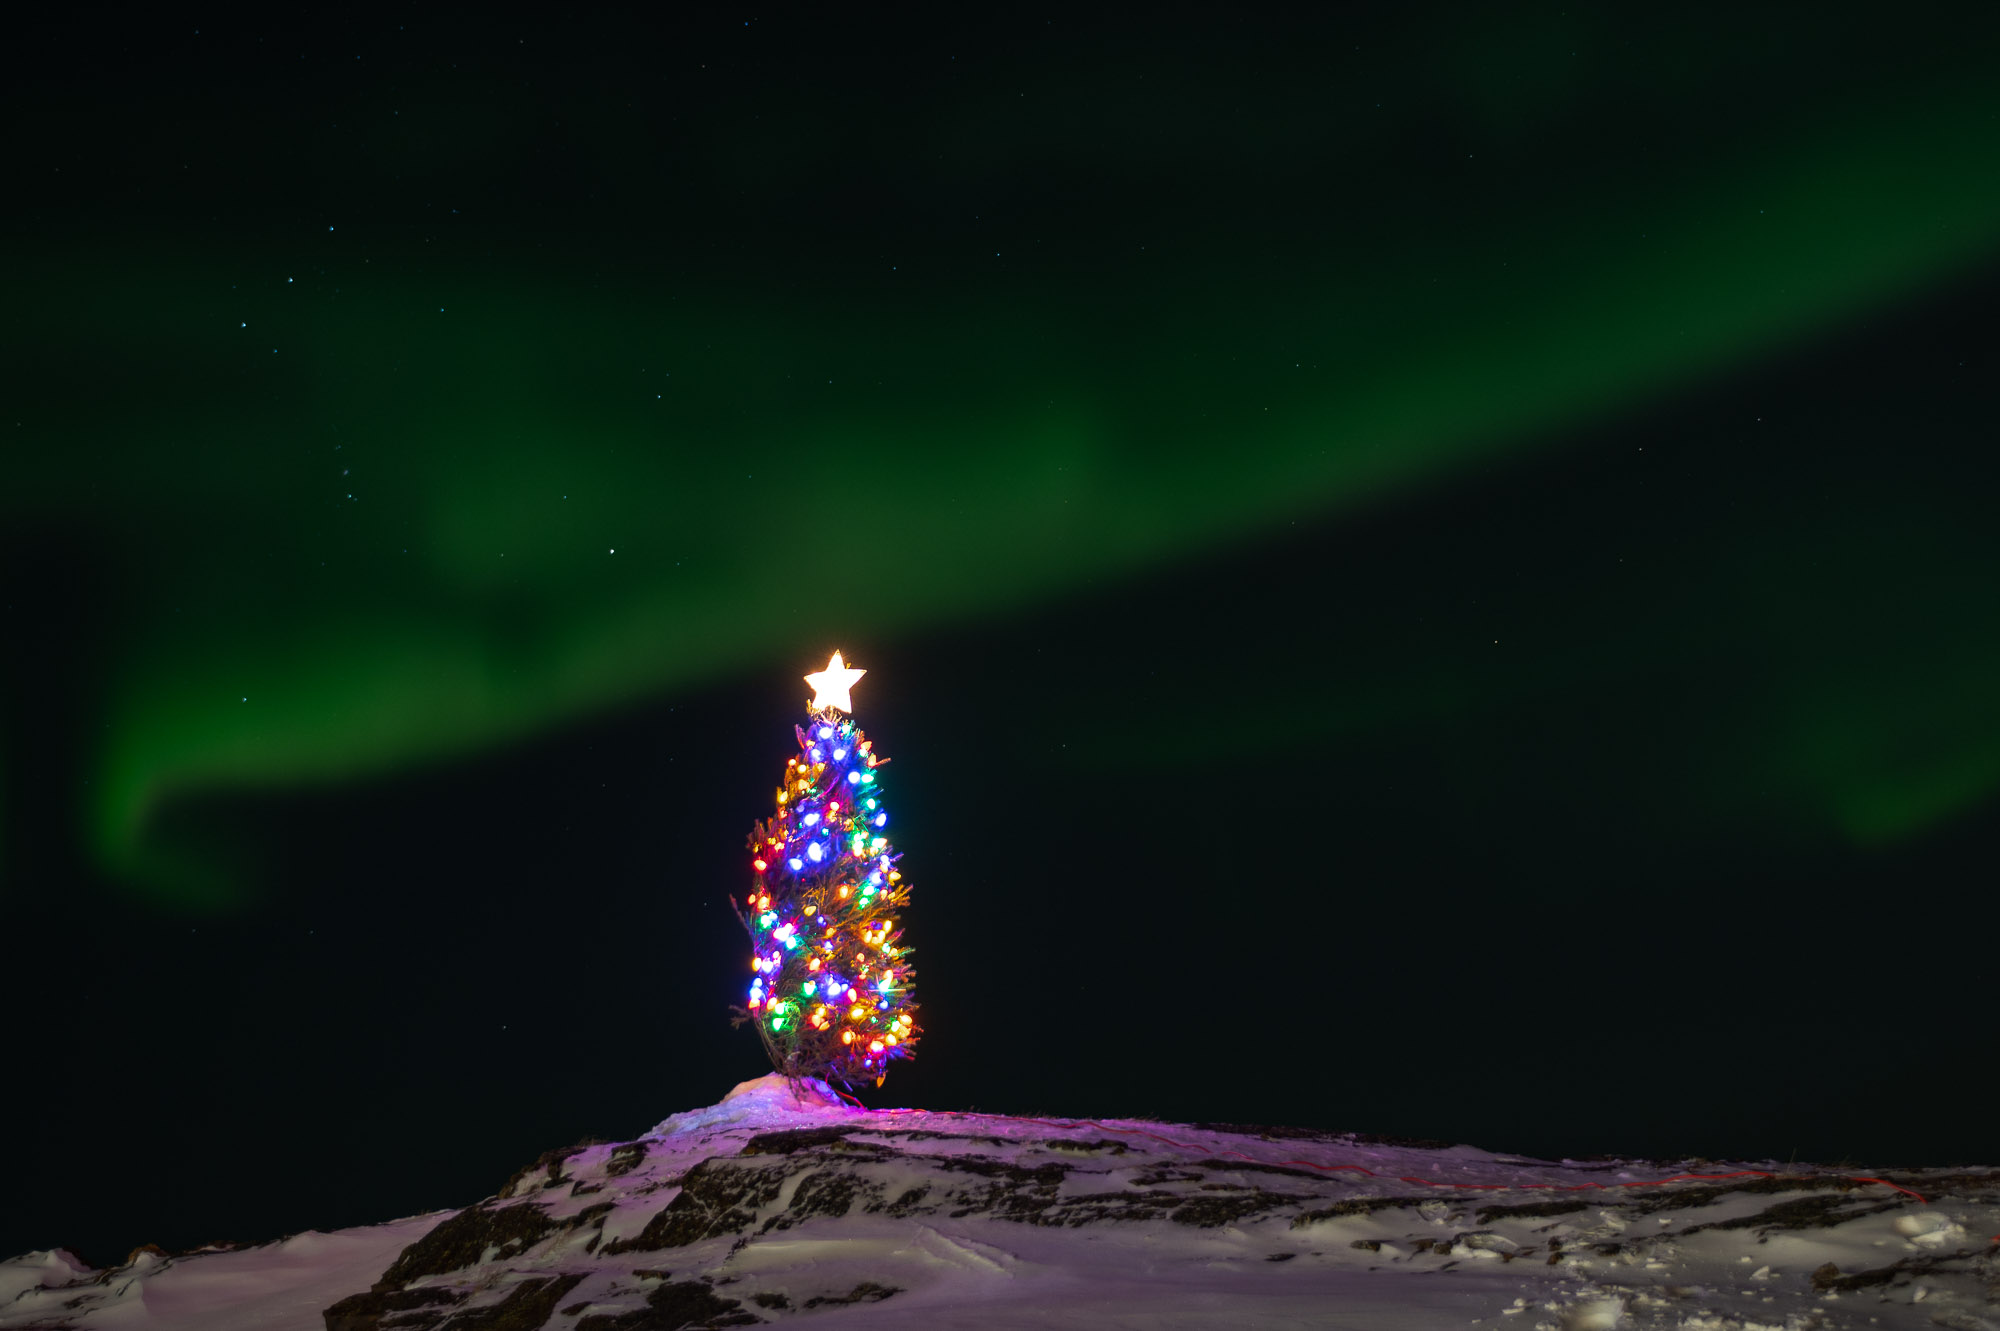 The northern lights dance around a Christmas tree in Iqaluit's Tundra Ridge neighbourhood in the week leading up to Christmas. (Photo by Dustin Patar)